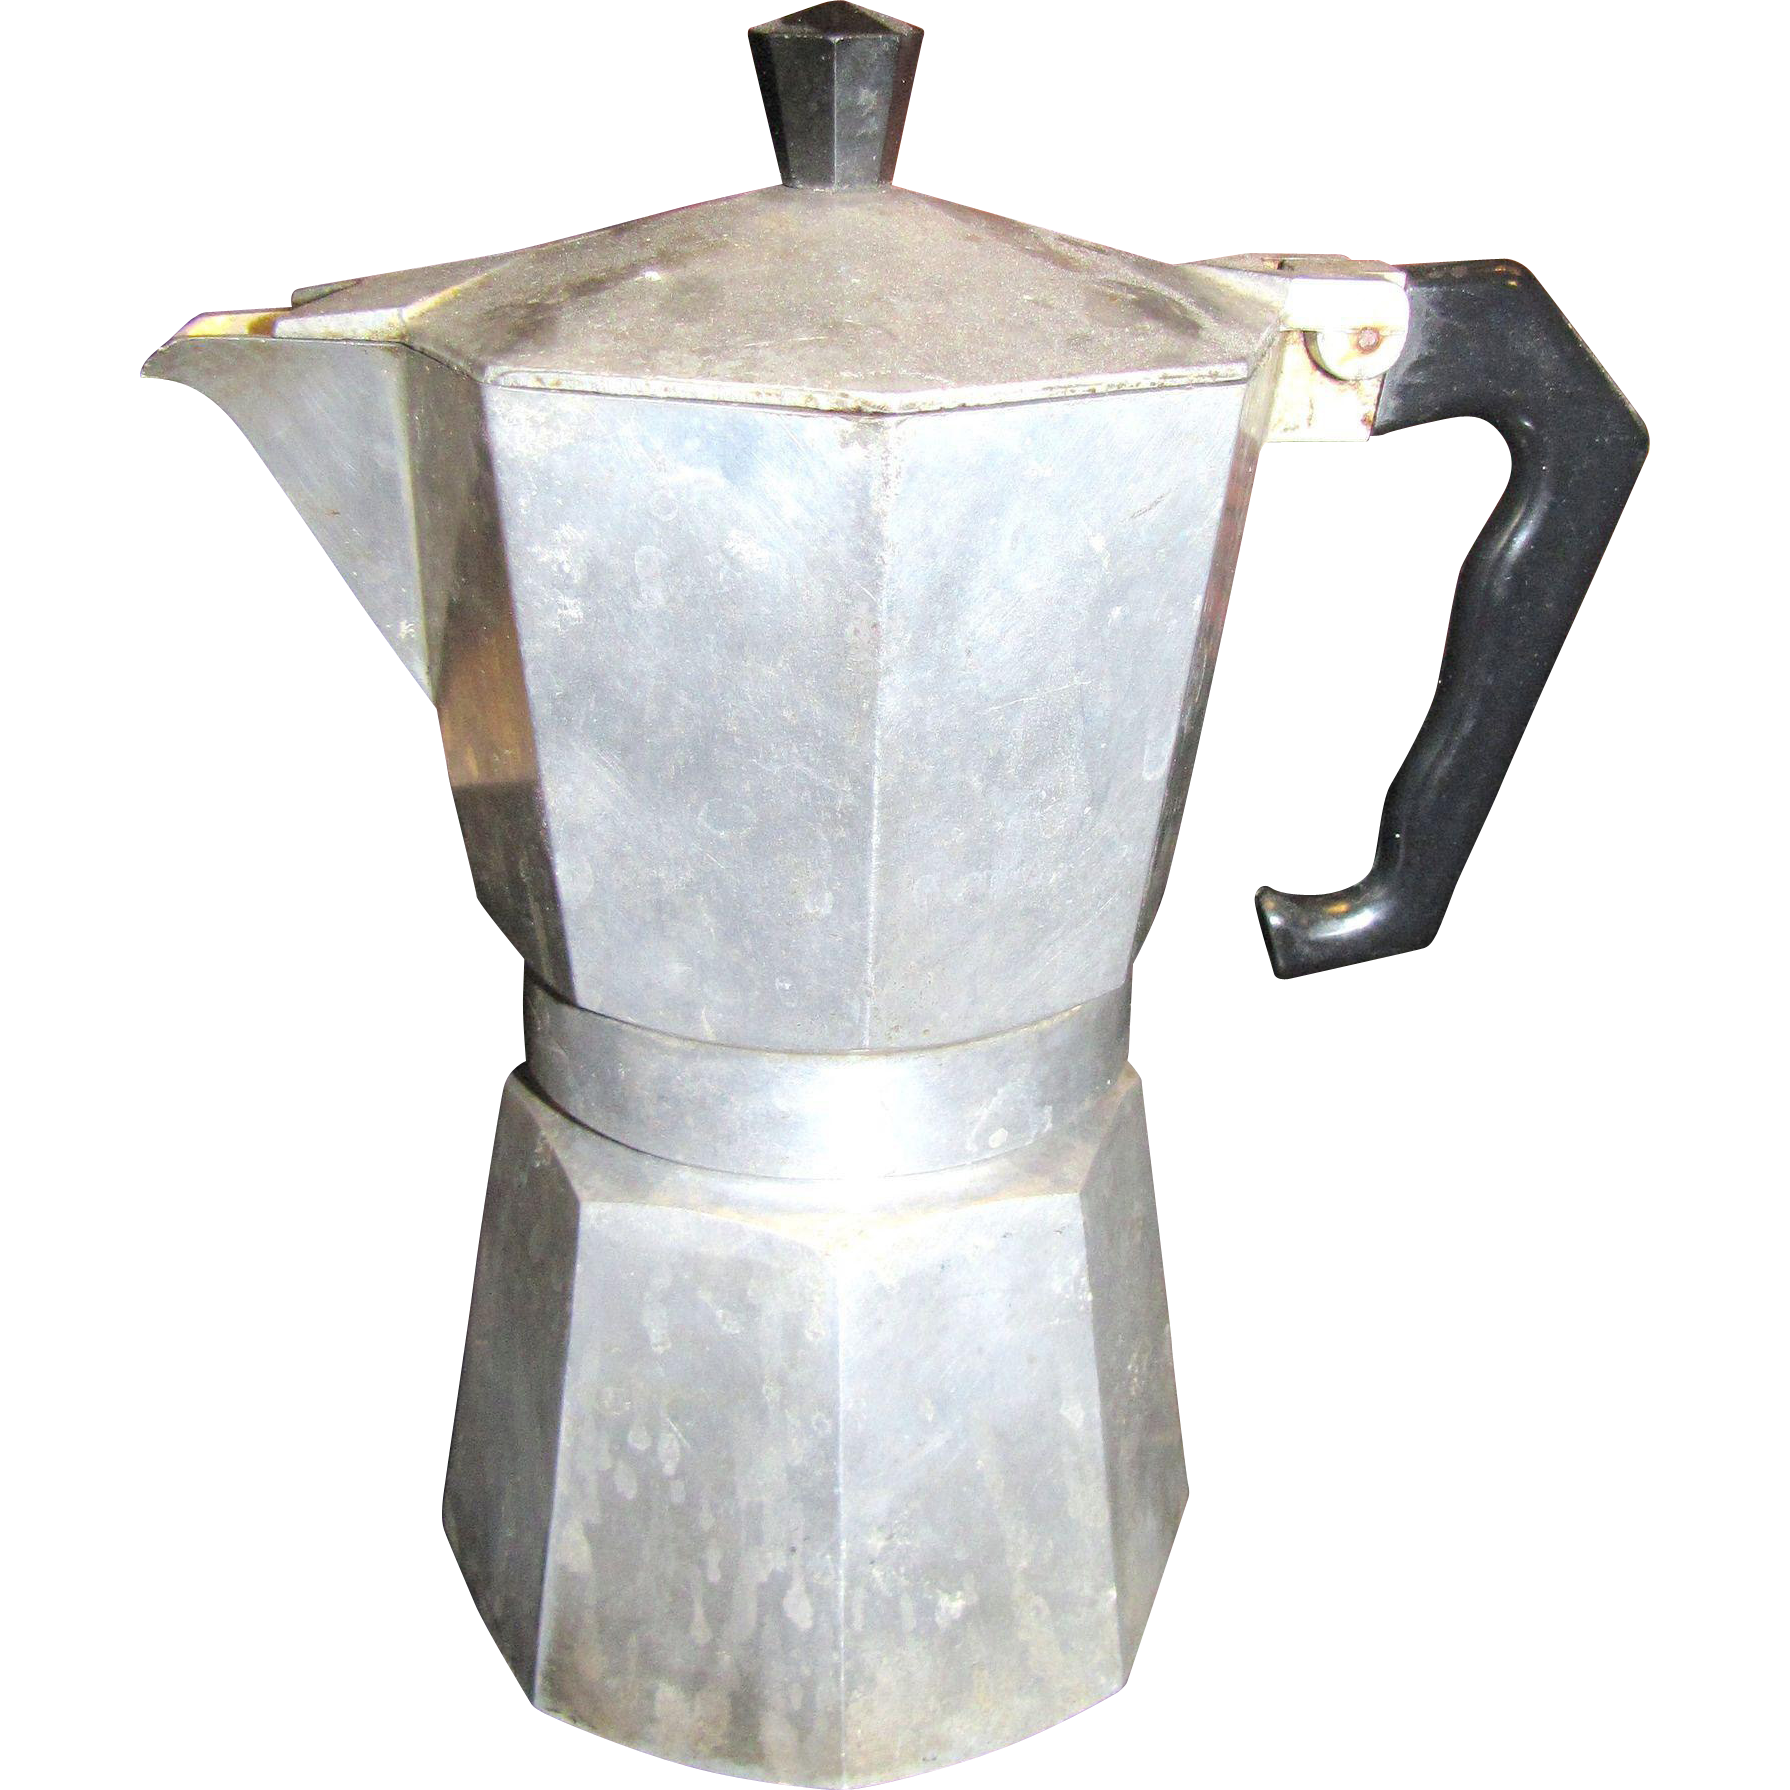 Antique Italian Coffee Maker : Vintage Italian Aluminium Stovetop Espresso Coffee Maker by Morenita from faywrayantiques on ...